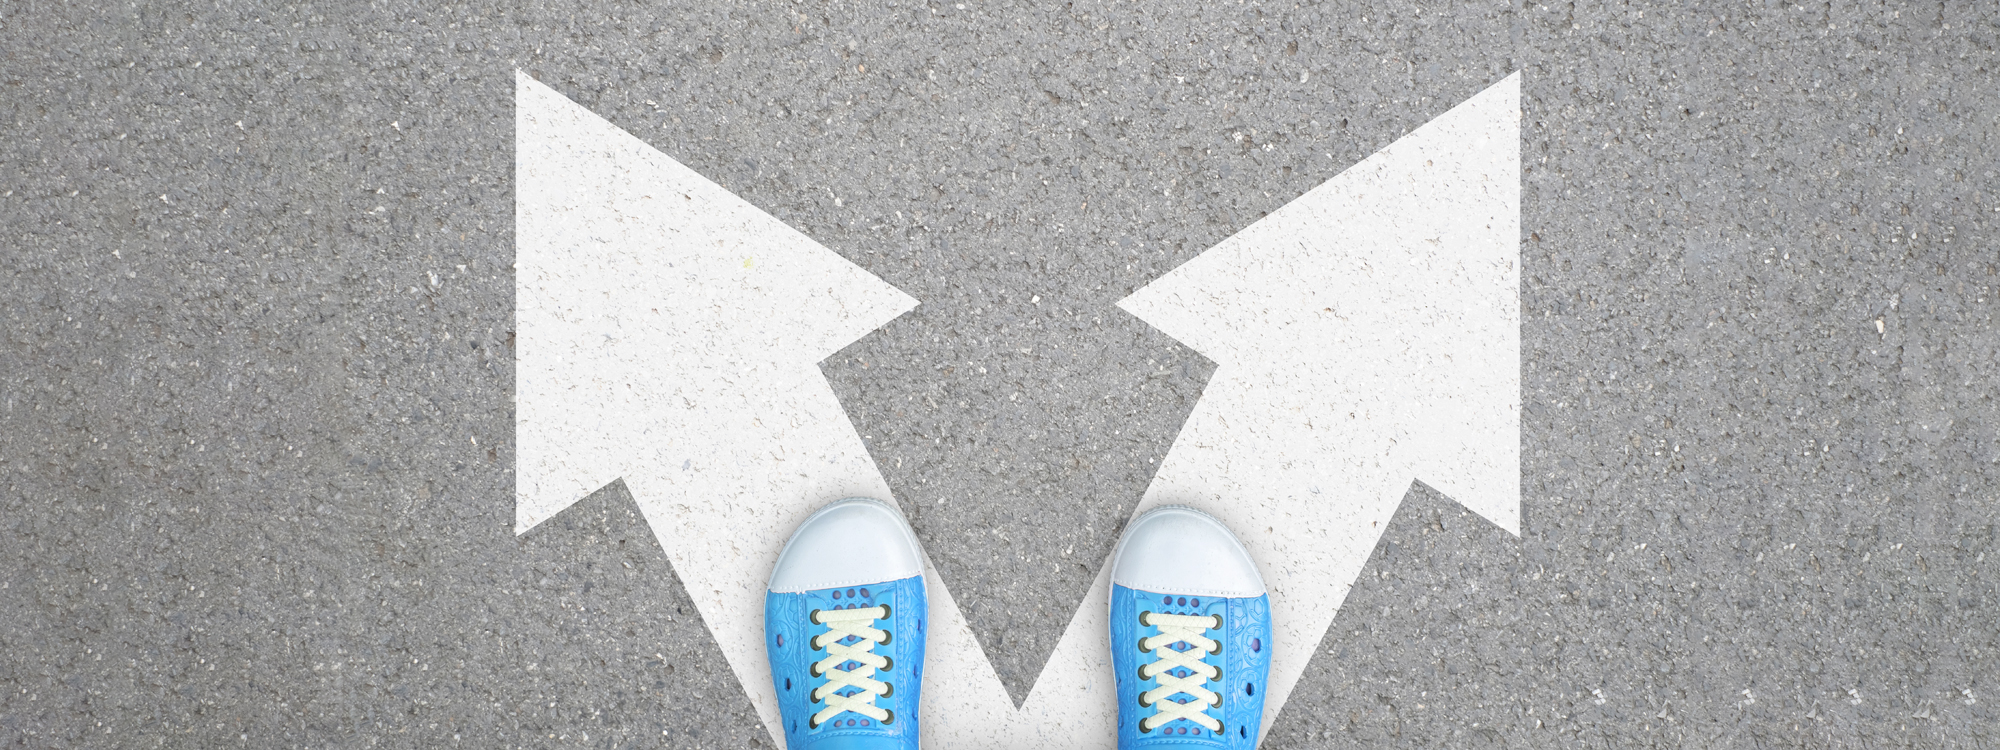 Teenagers and big decisions in life - by Merete Langler